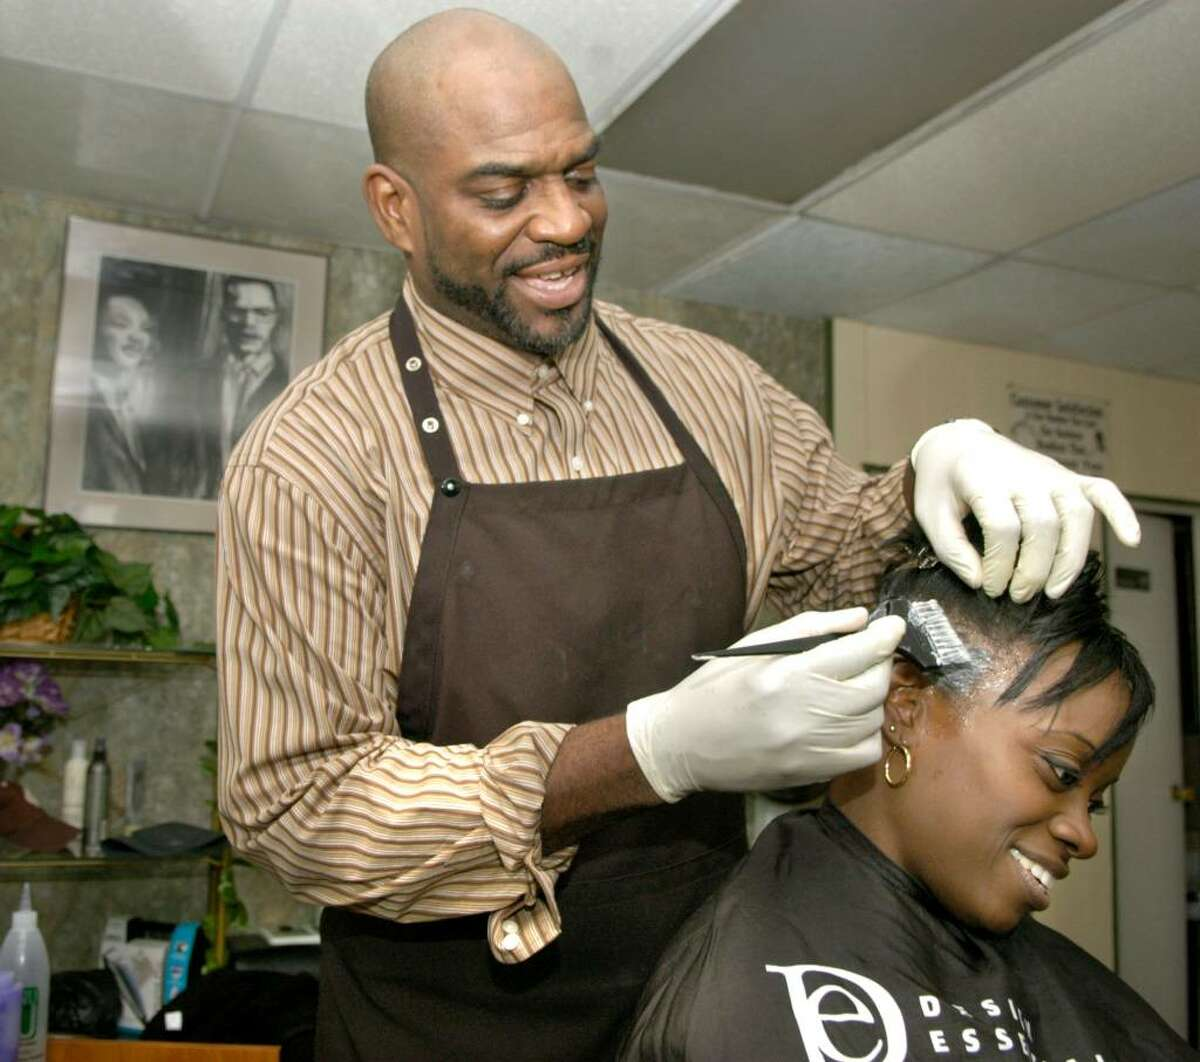 Anthony and Tanisha Jamison, both stylists, are owners of AT & J's Beauty Salon on Division St. which is part of the Wooster Village area. On Wednesday, during a down time, Anthony did his wife's hair.